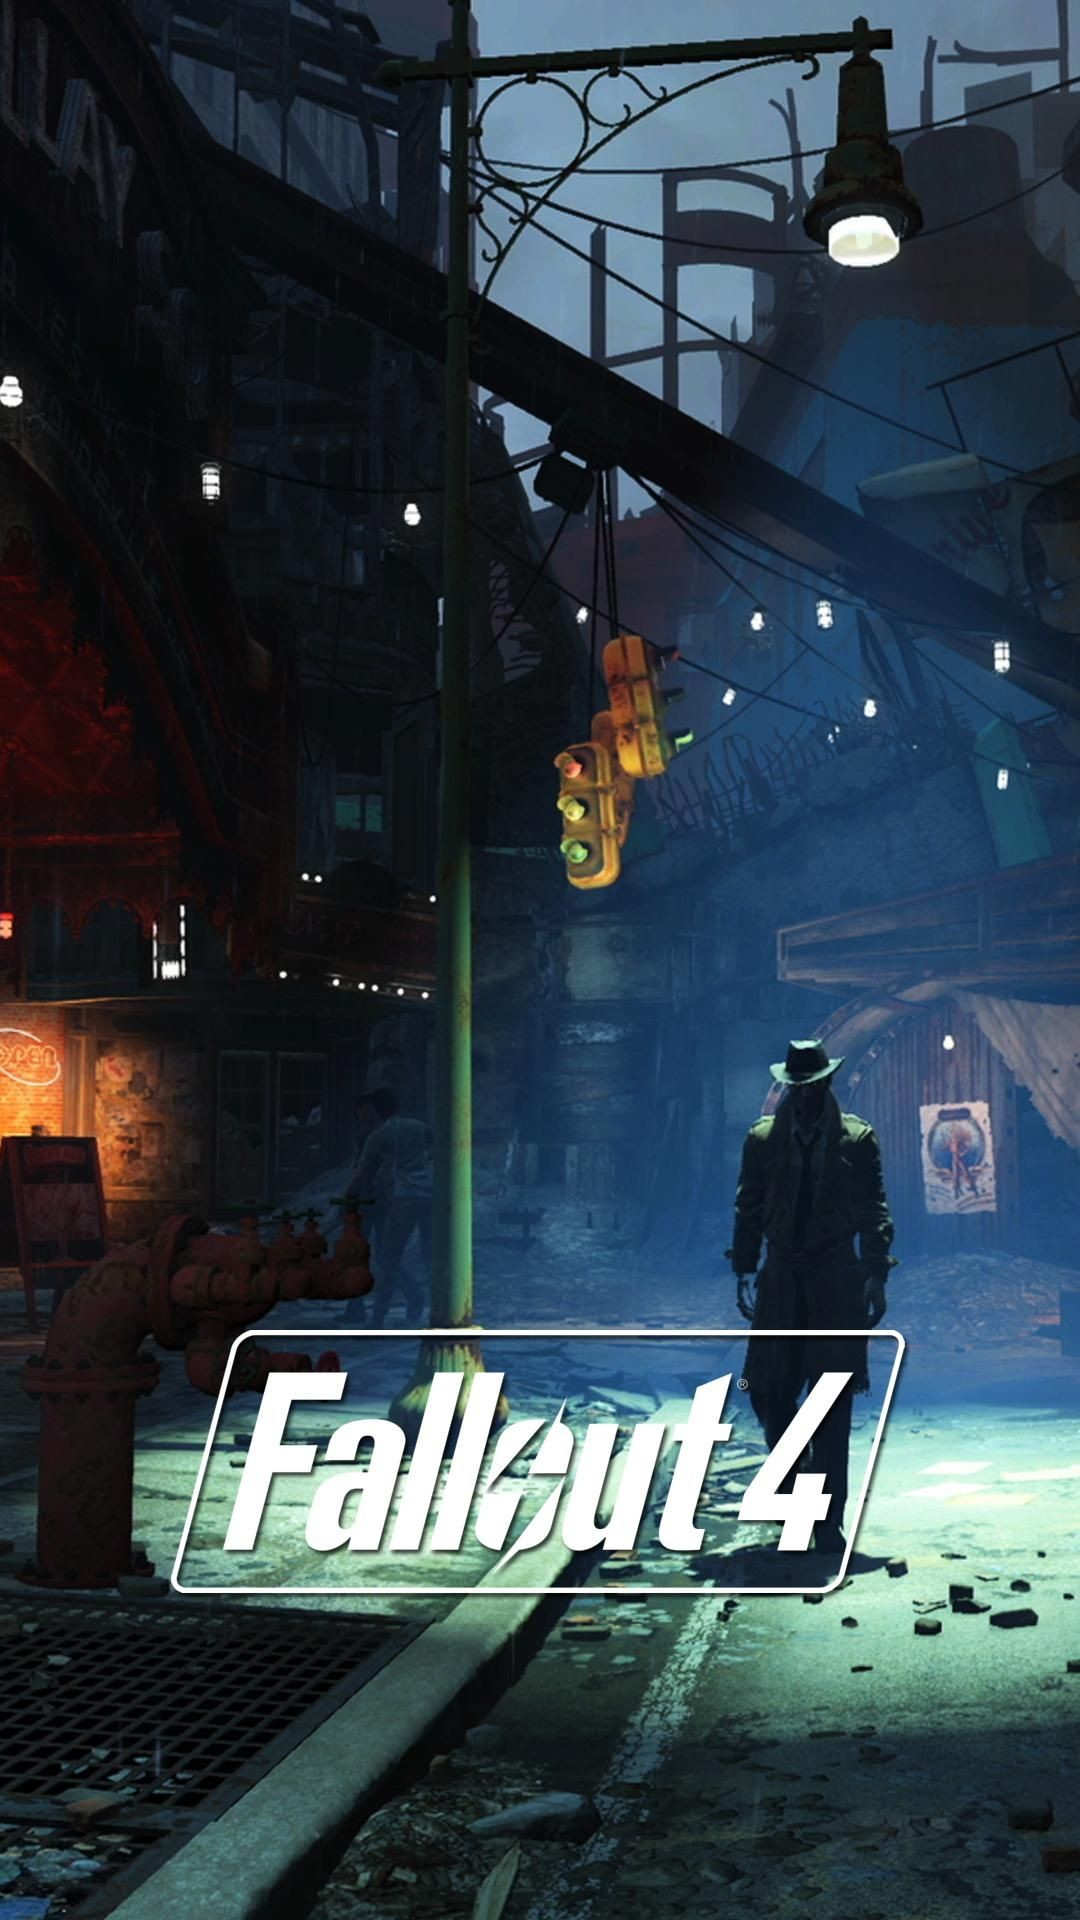 Res: 1080x1920, I made some Fallout 4 lock screen wallpapers from E3 stills - Album on Imgur